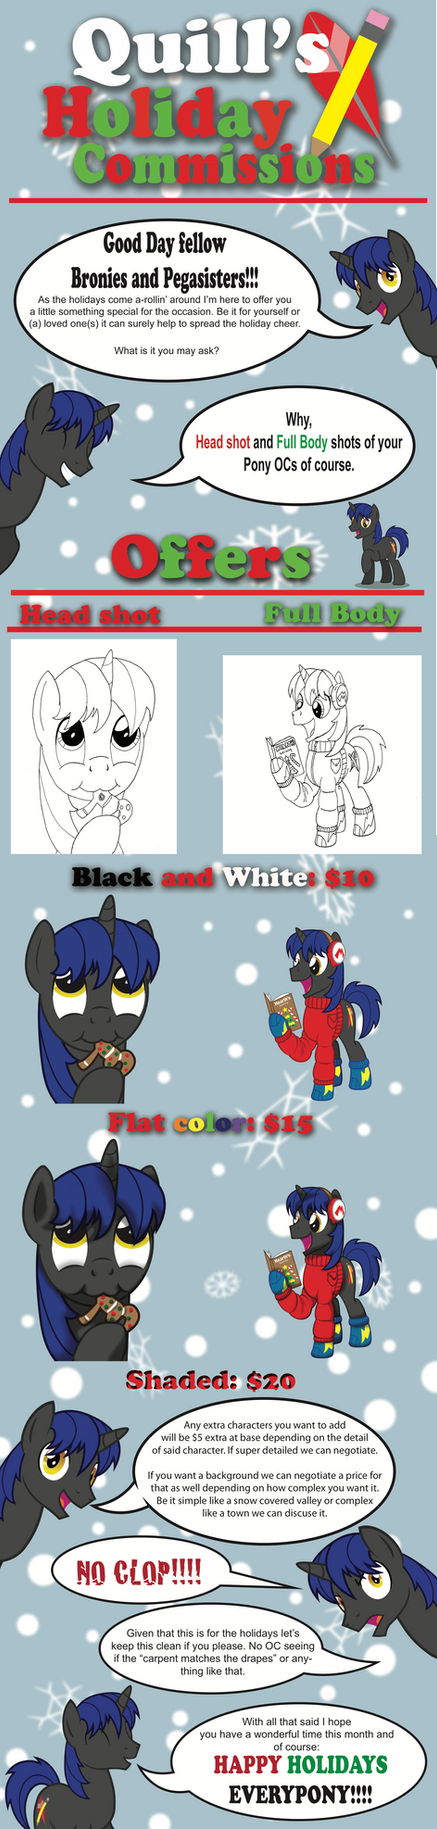 Holiday commissions by marioking89